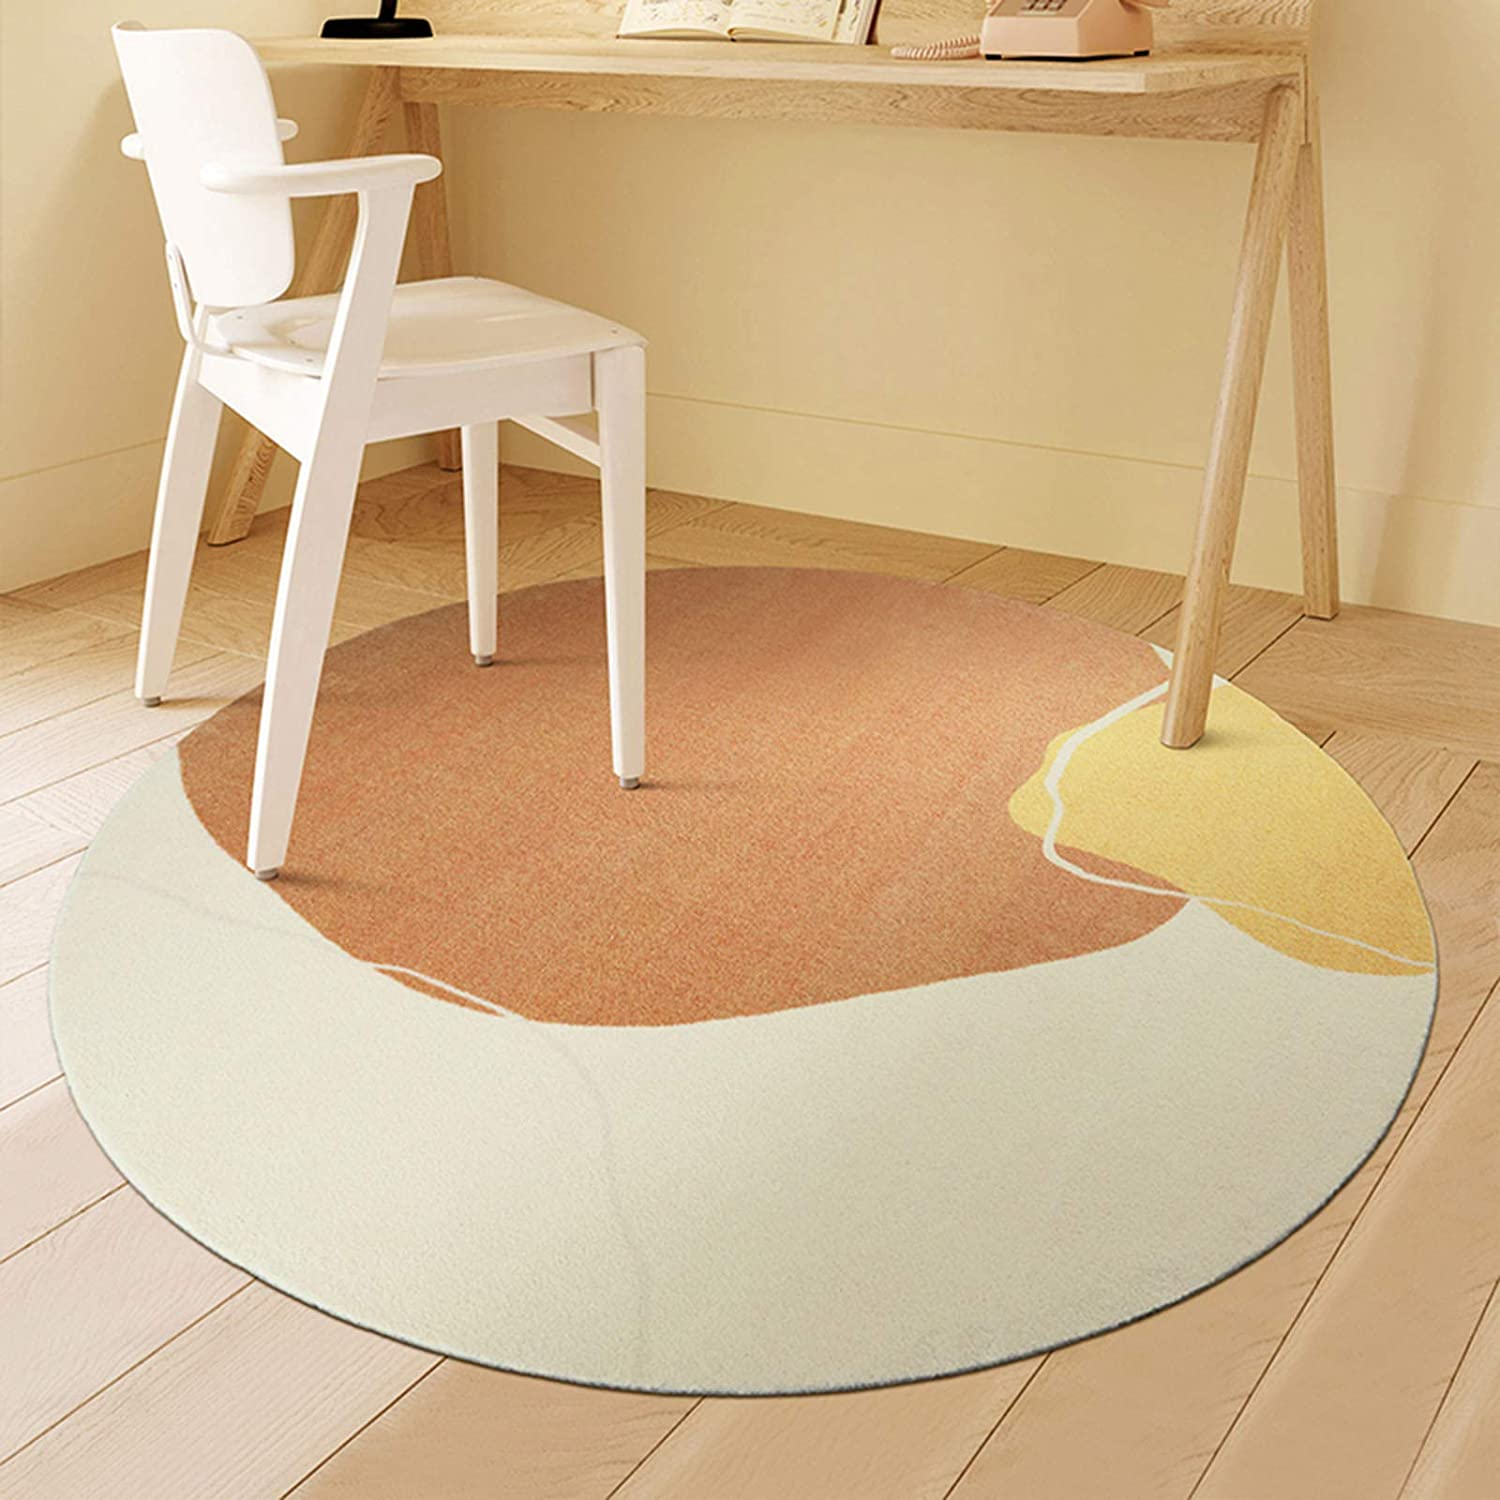 Bedroom Rugs Circular All stores are sold Area Faux Ranking TOP16 Fur Rug Con Round Modern